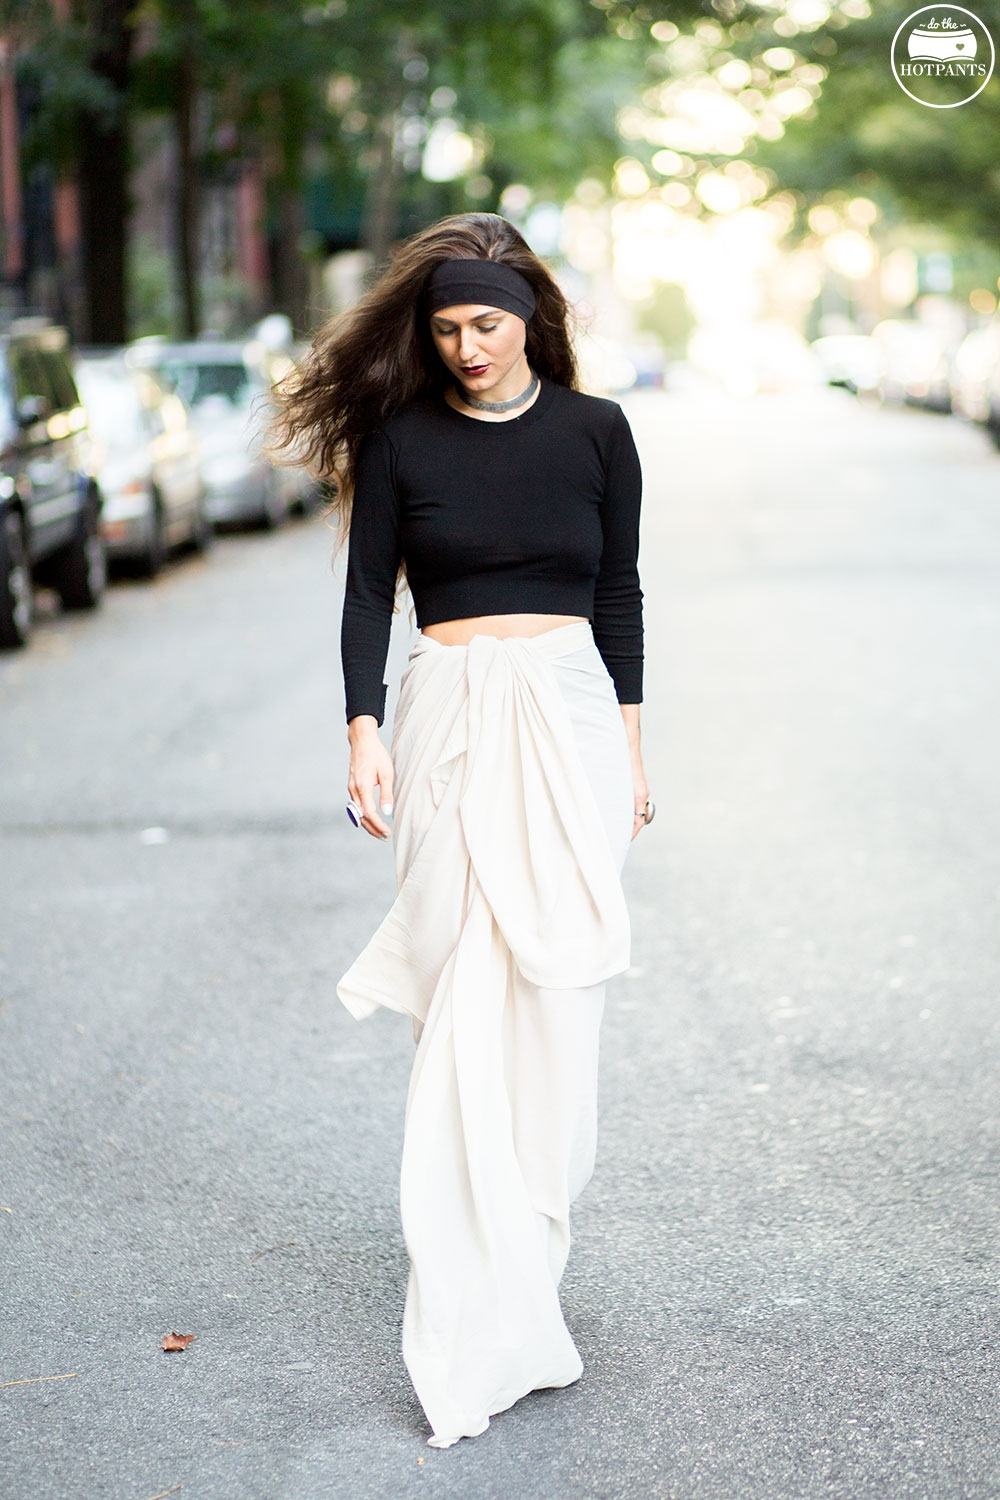 Do The Hotpants Dana Suchow Crop Top Sweater See Through Maxi Skirt No Bra Free The Nipple IMG_3289